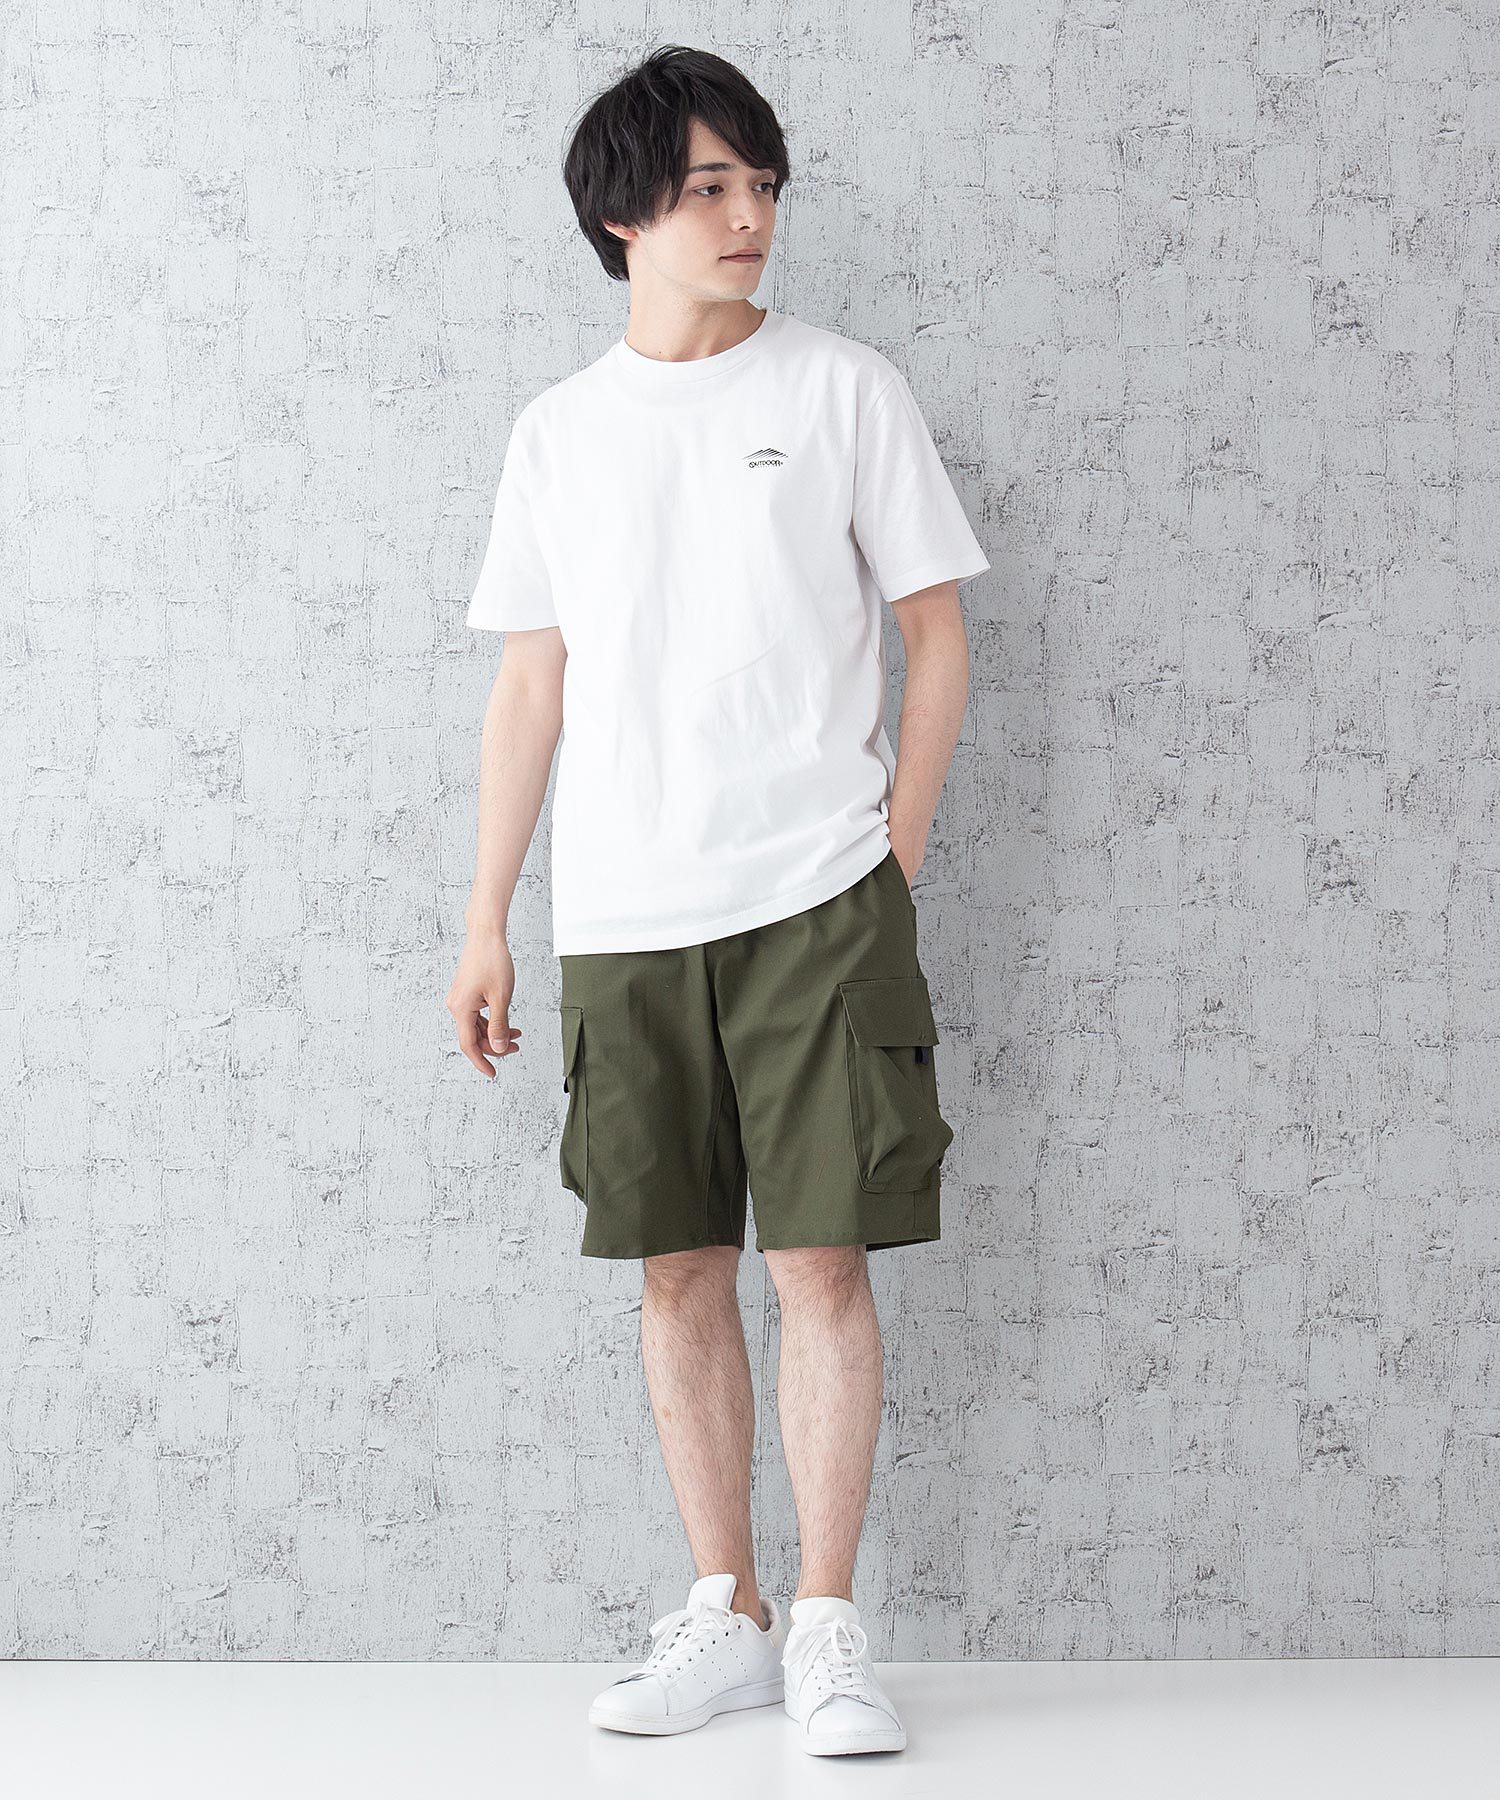 OUTDOOR PRODUCTS APPAREL 防蚊加工 ワンポイントブランドロゴTシャツ